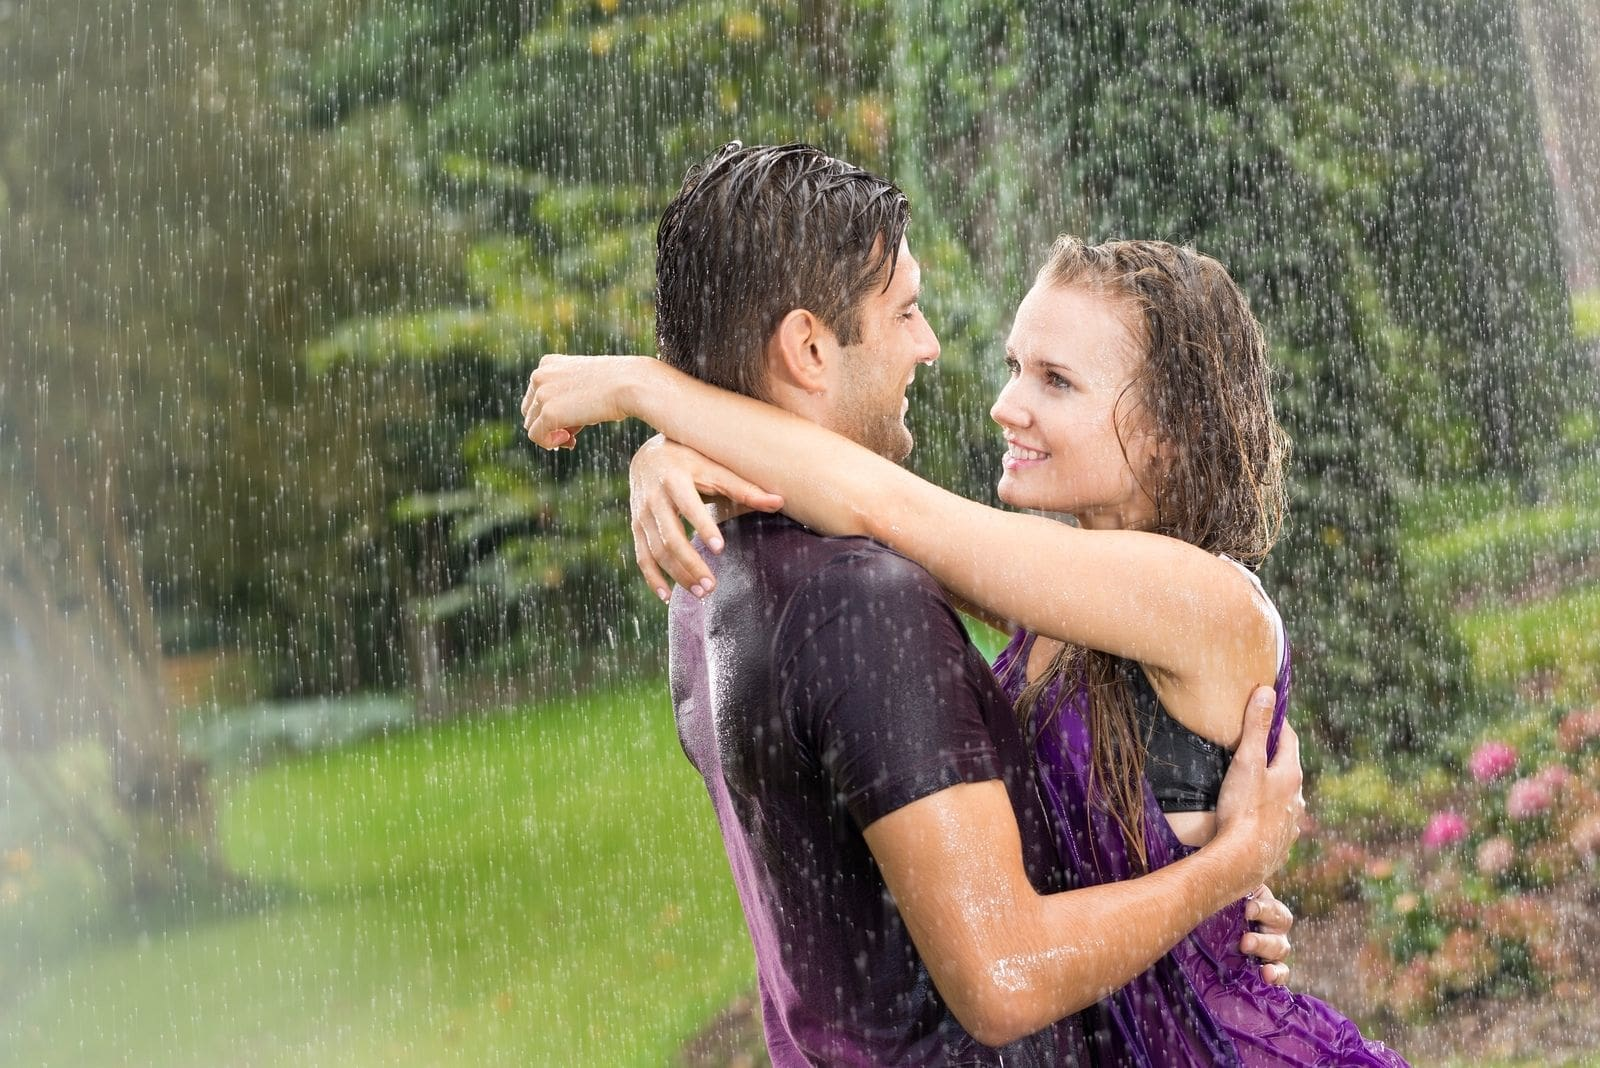 couple in the rain hugging getting drenched with rainwater outdoors